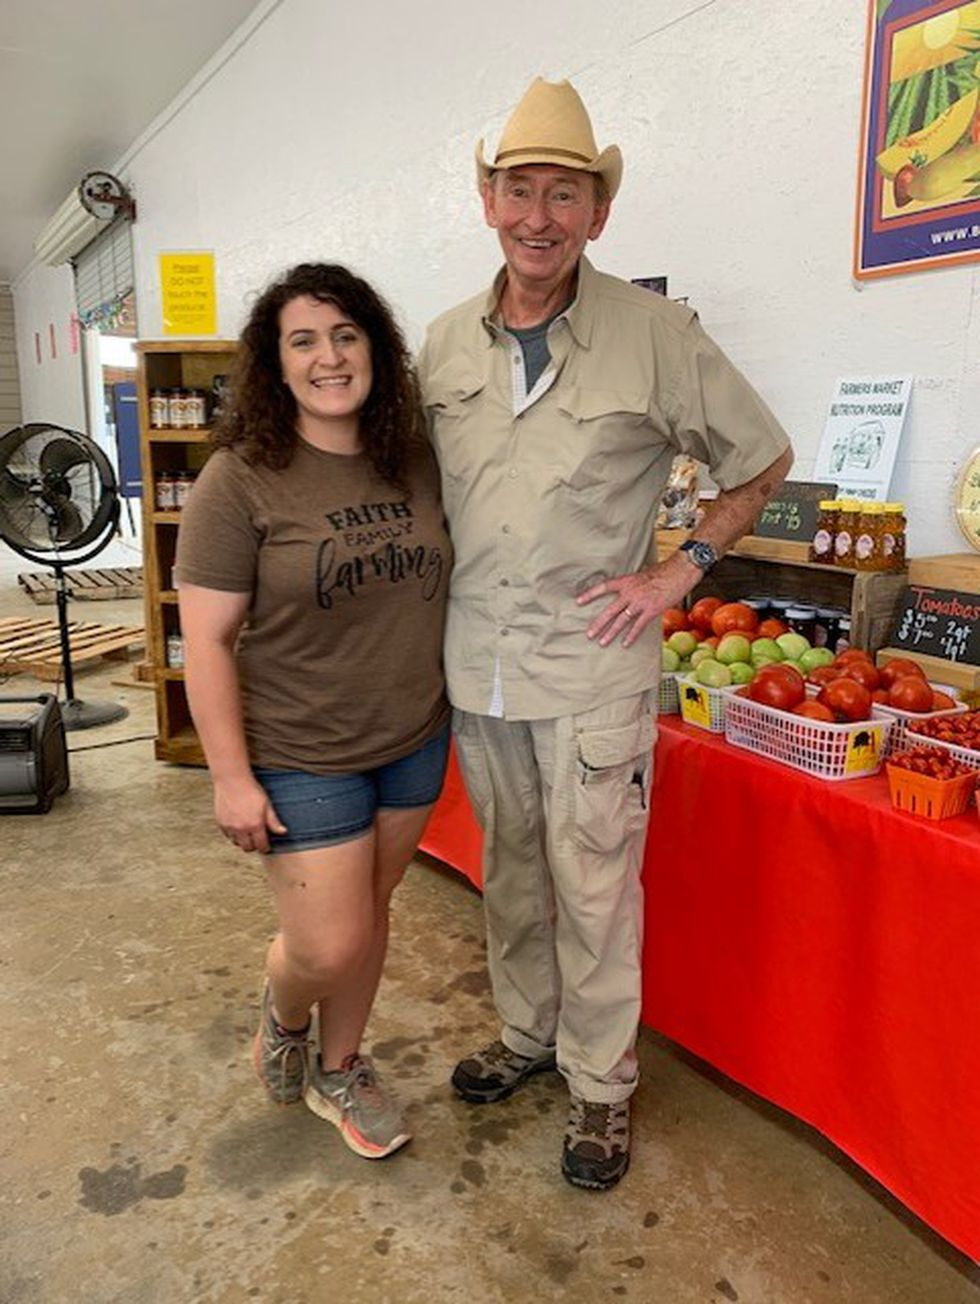 Allman Farms and Orchards